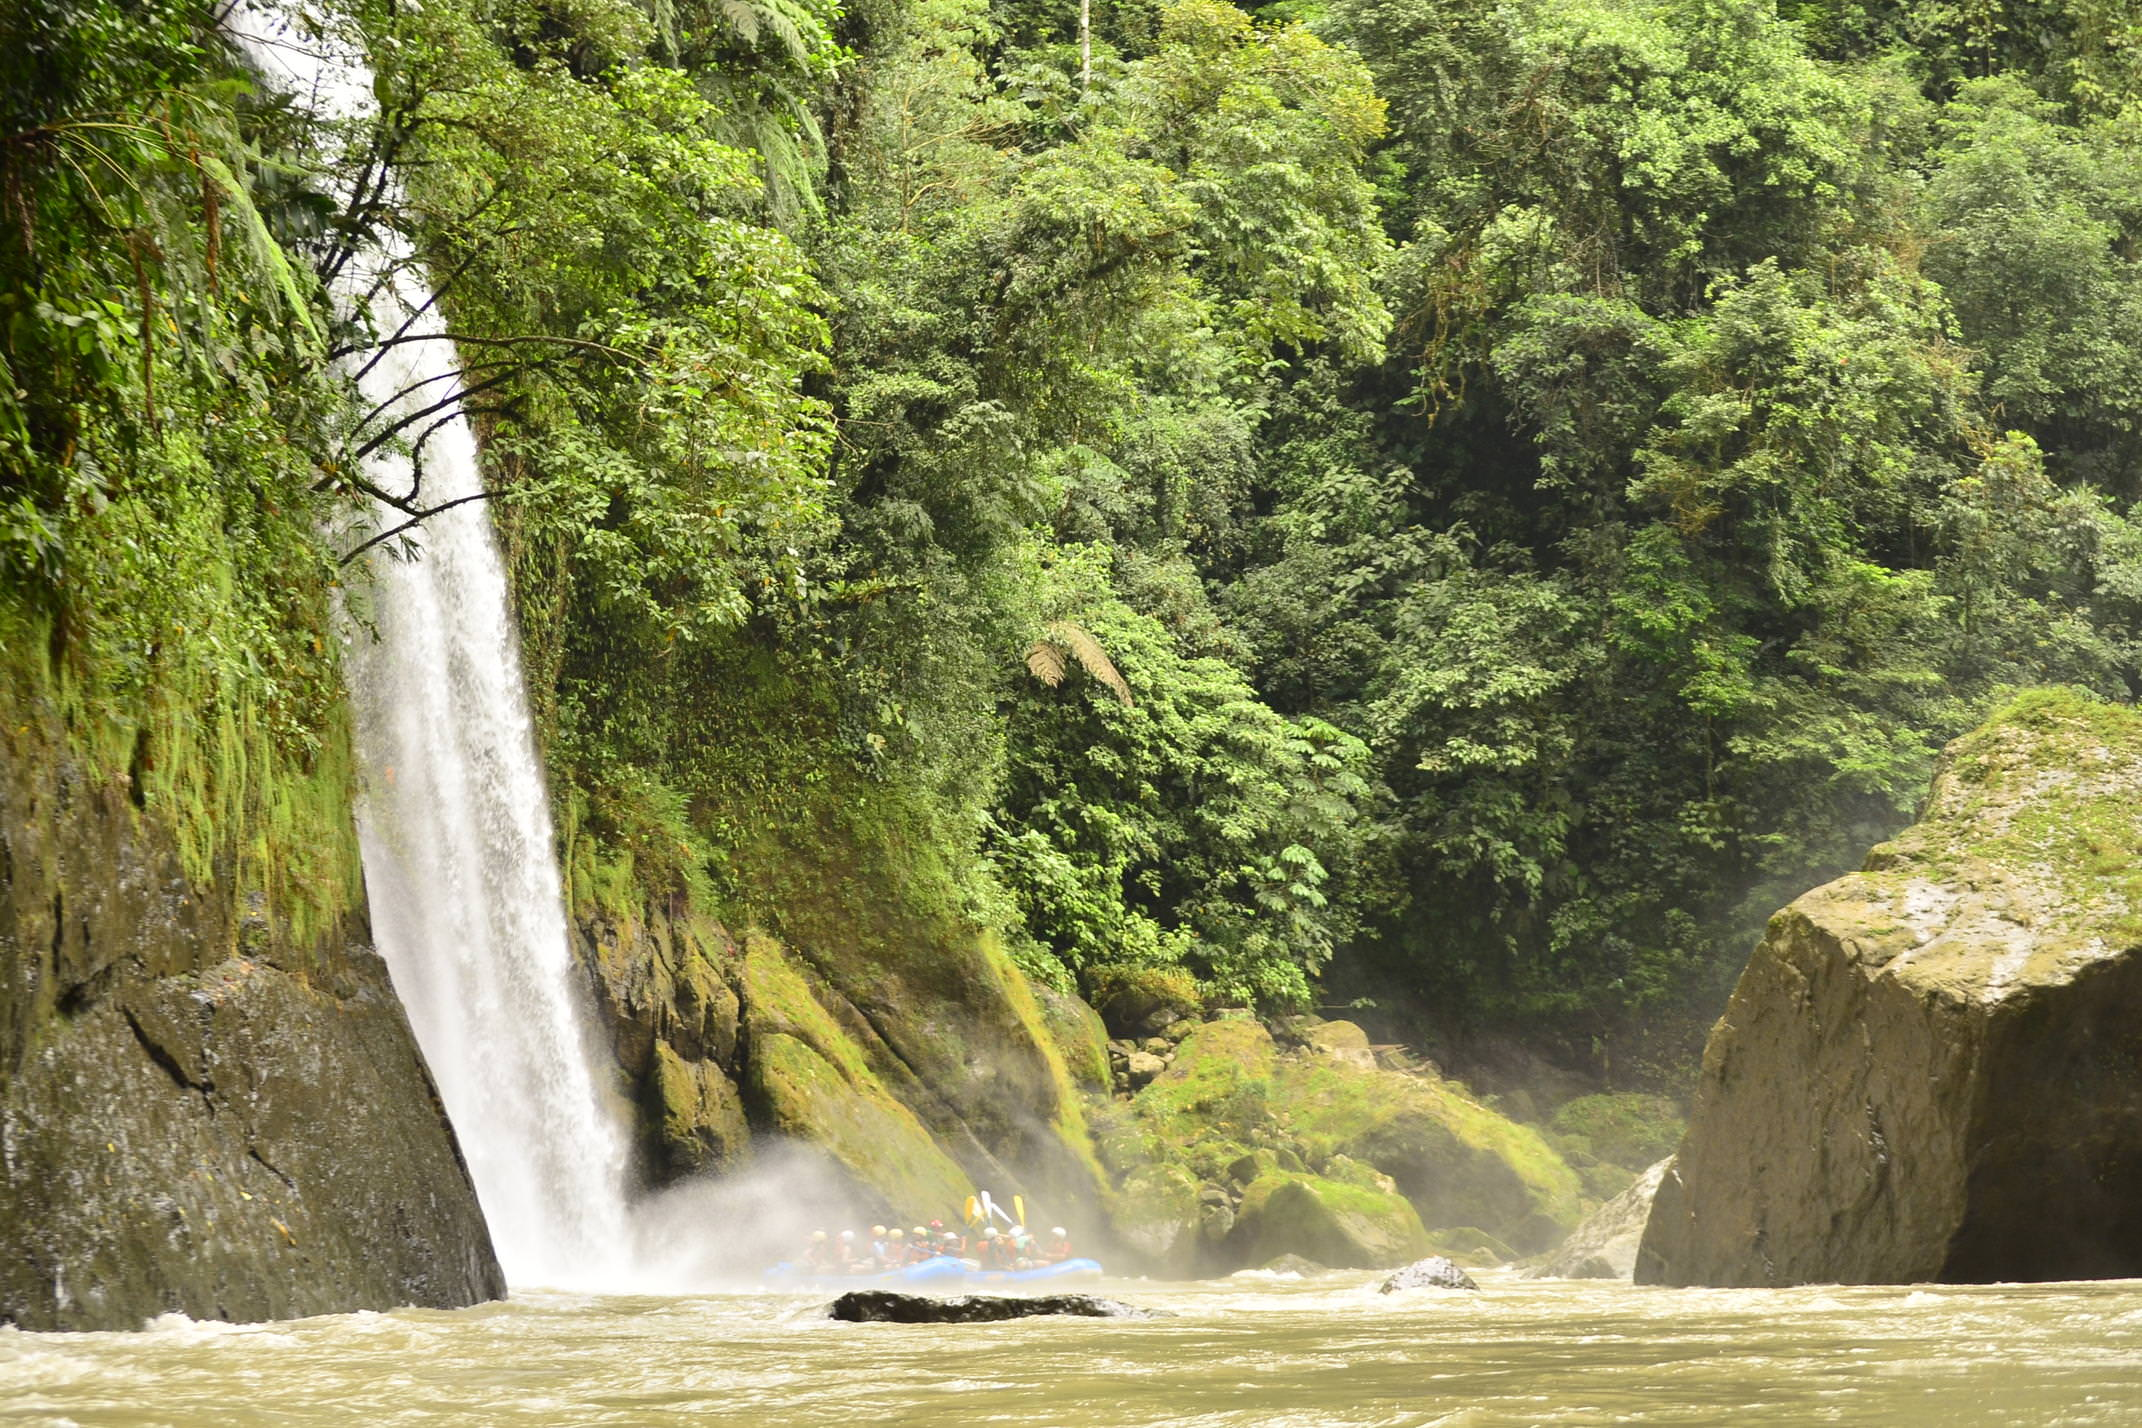 Costa rica pacuare rafting under waterfall